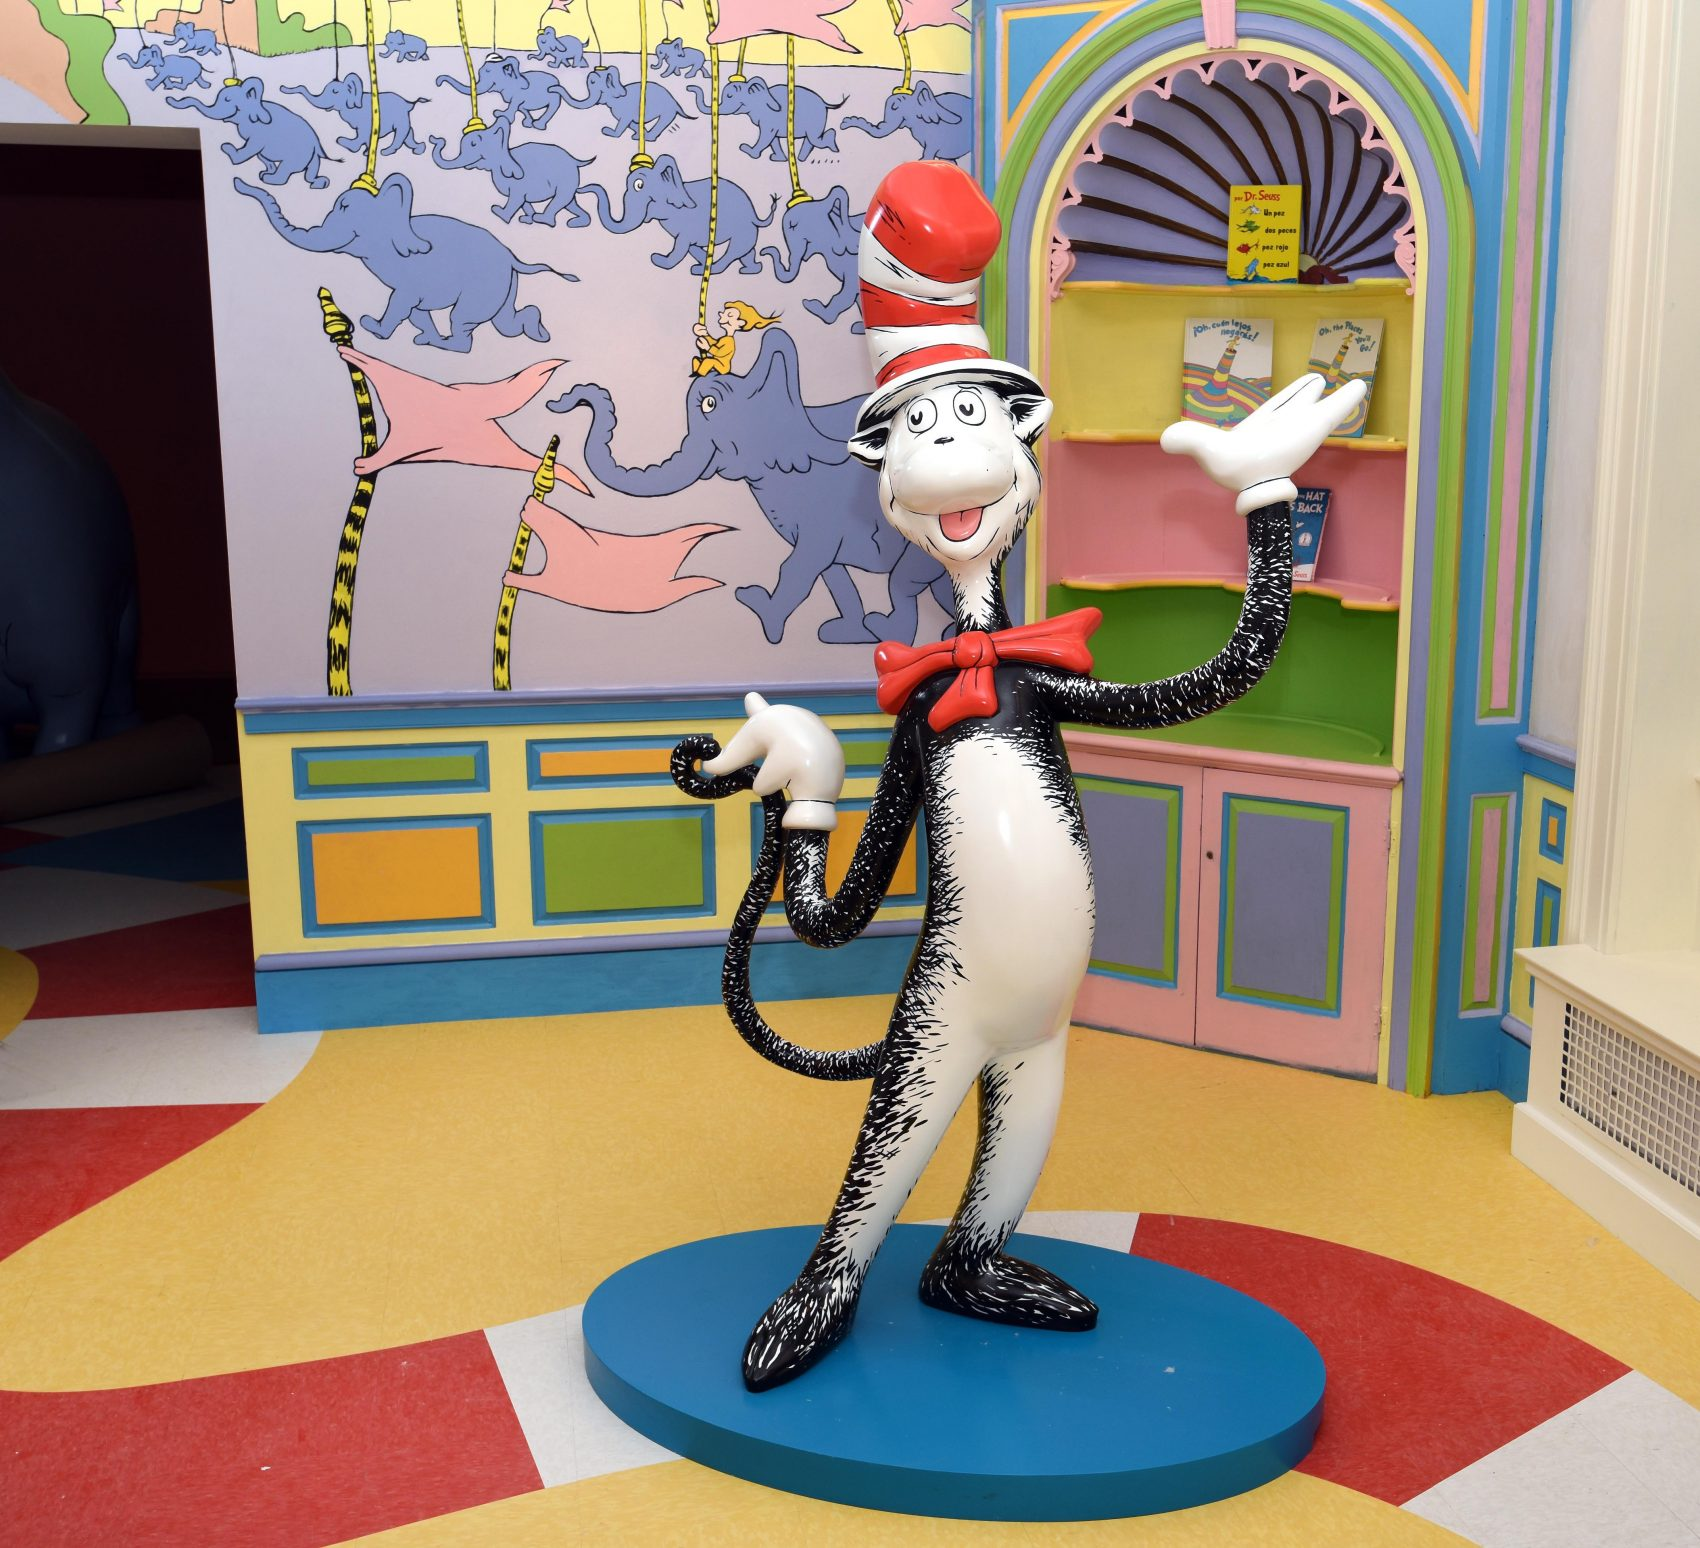 At Springfields New Dr Seuss Museum A Perfect Tribute To The